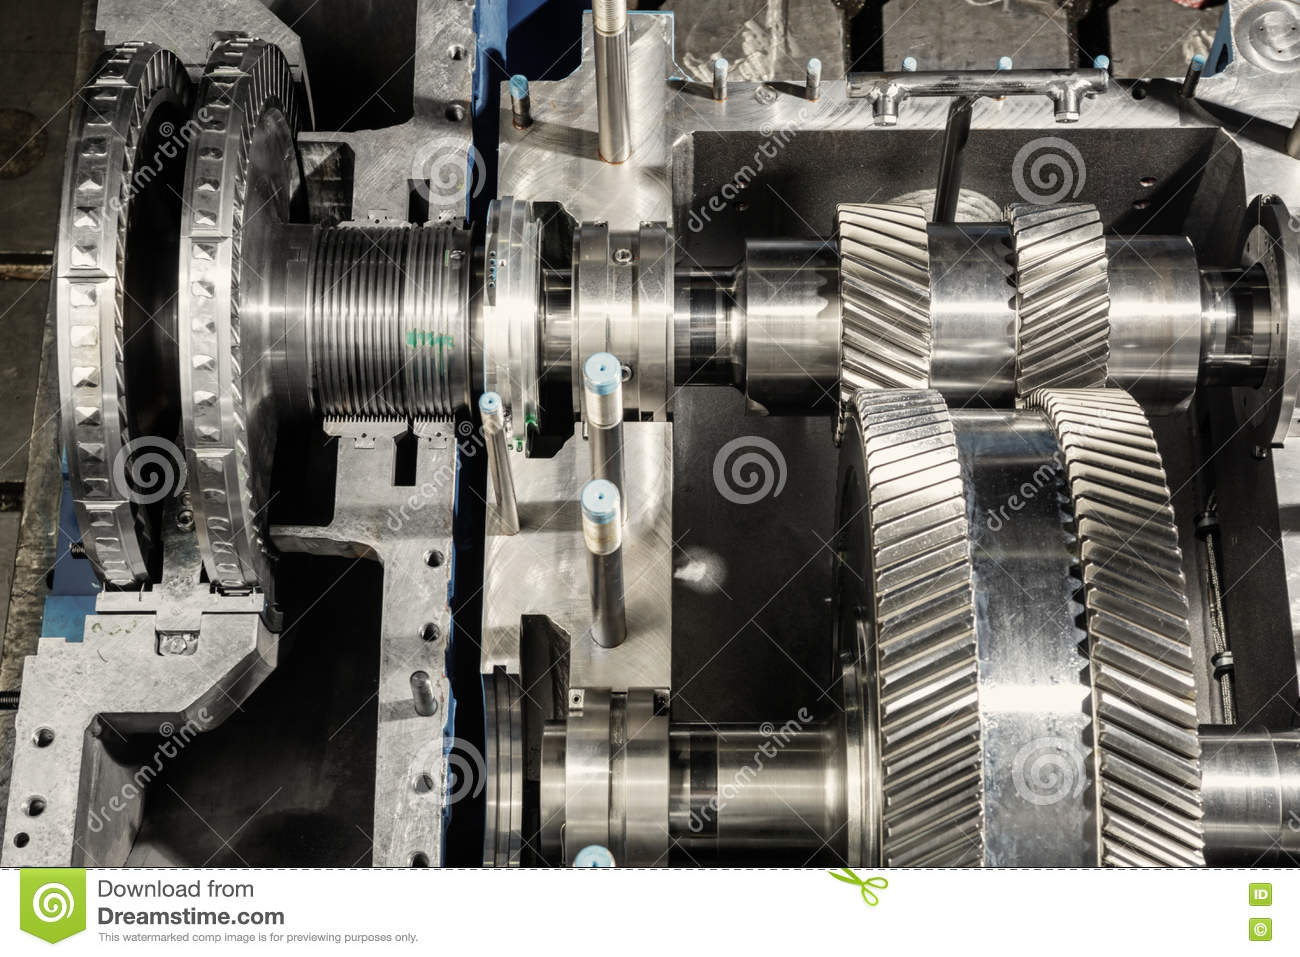 Steam Turbines and Gearing